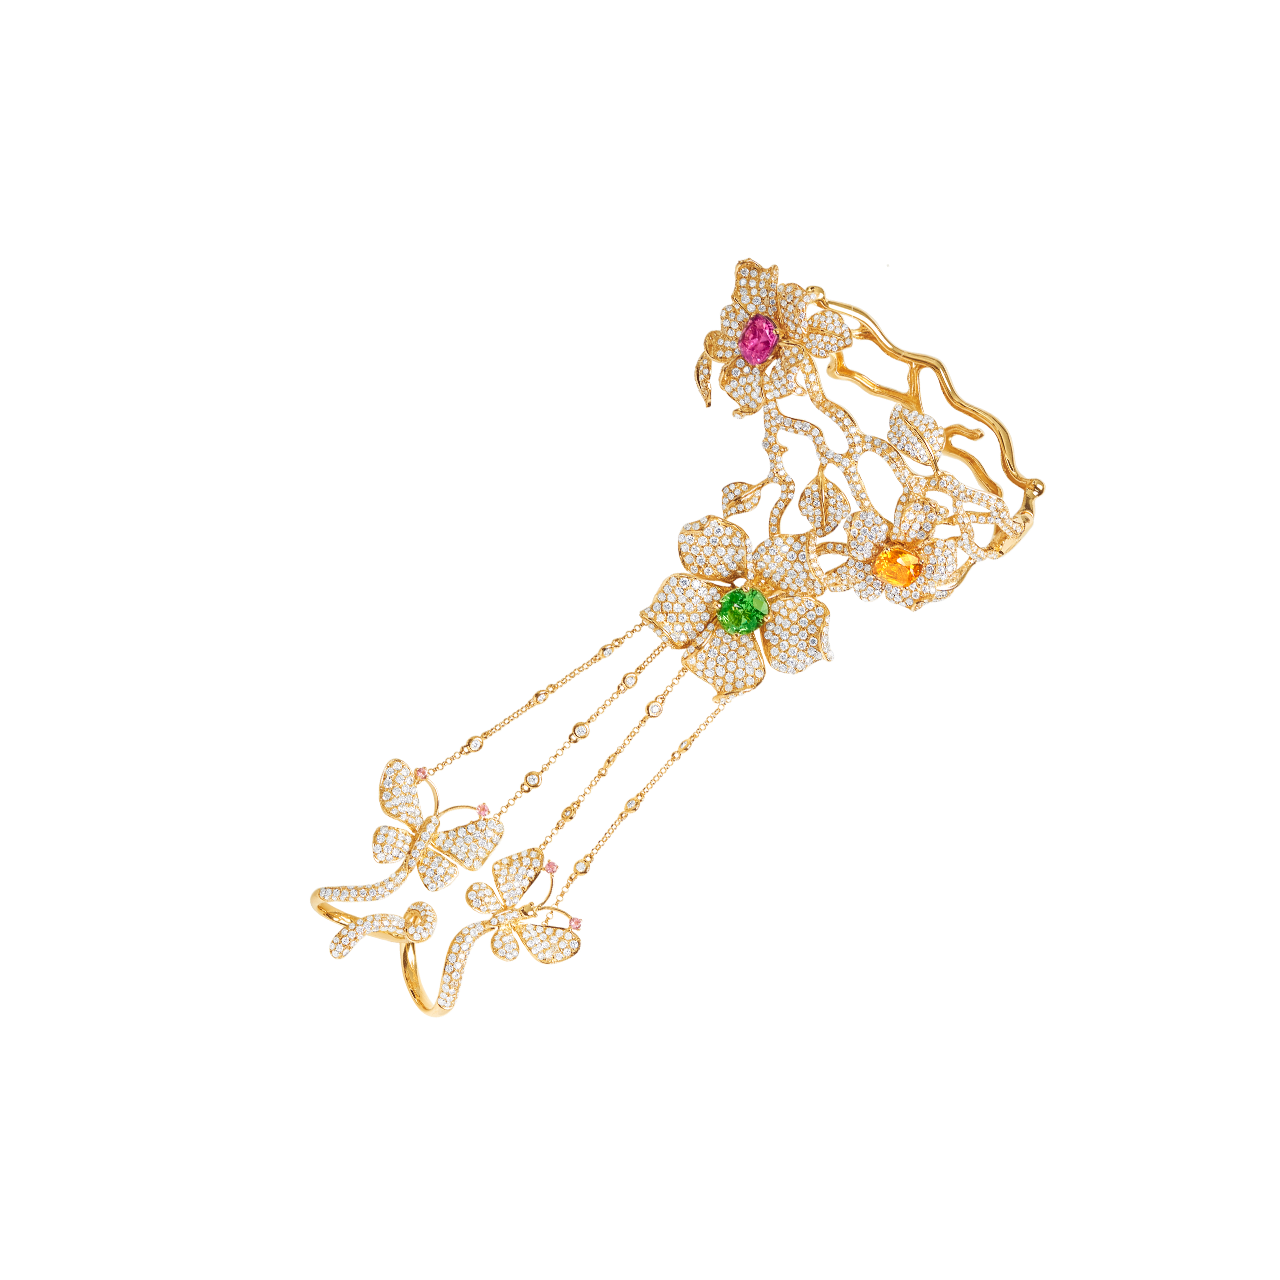 EGL 桐花彩寶鑽石戒鍊手環 69.94公克